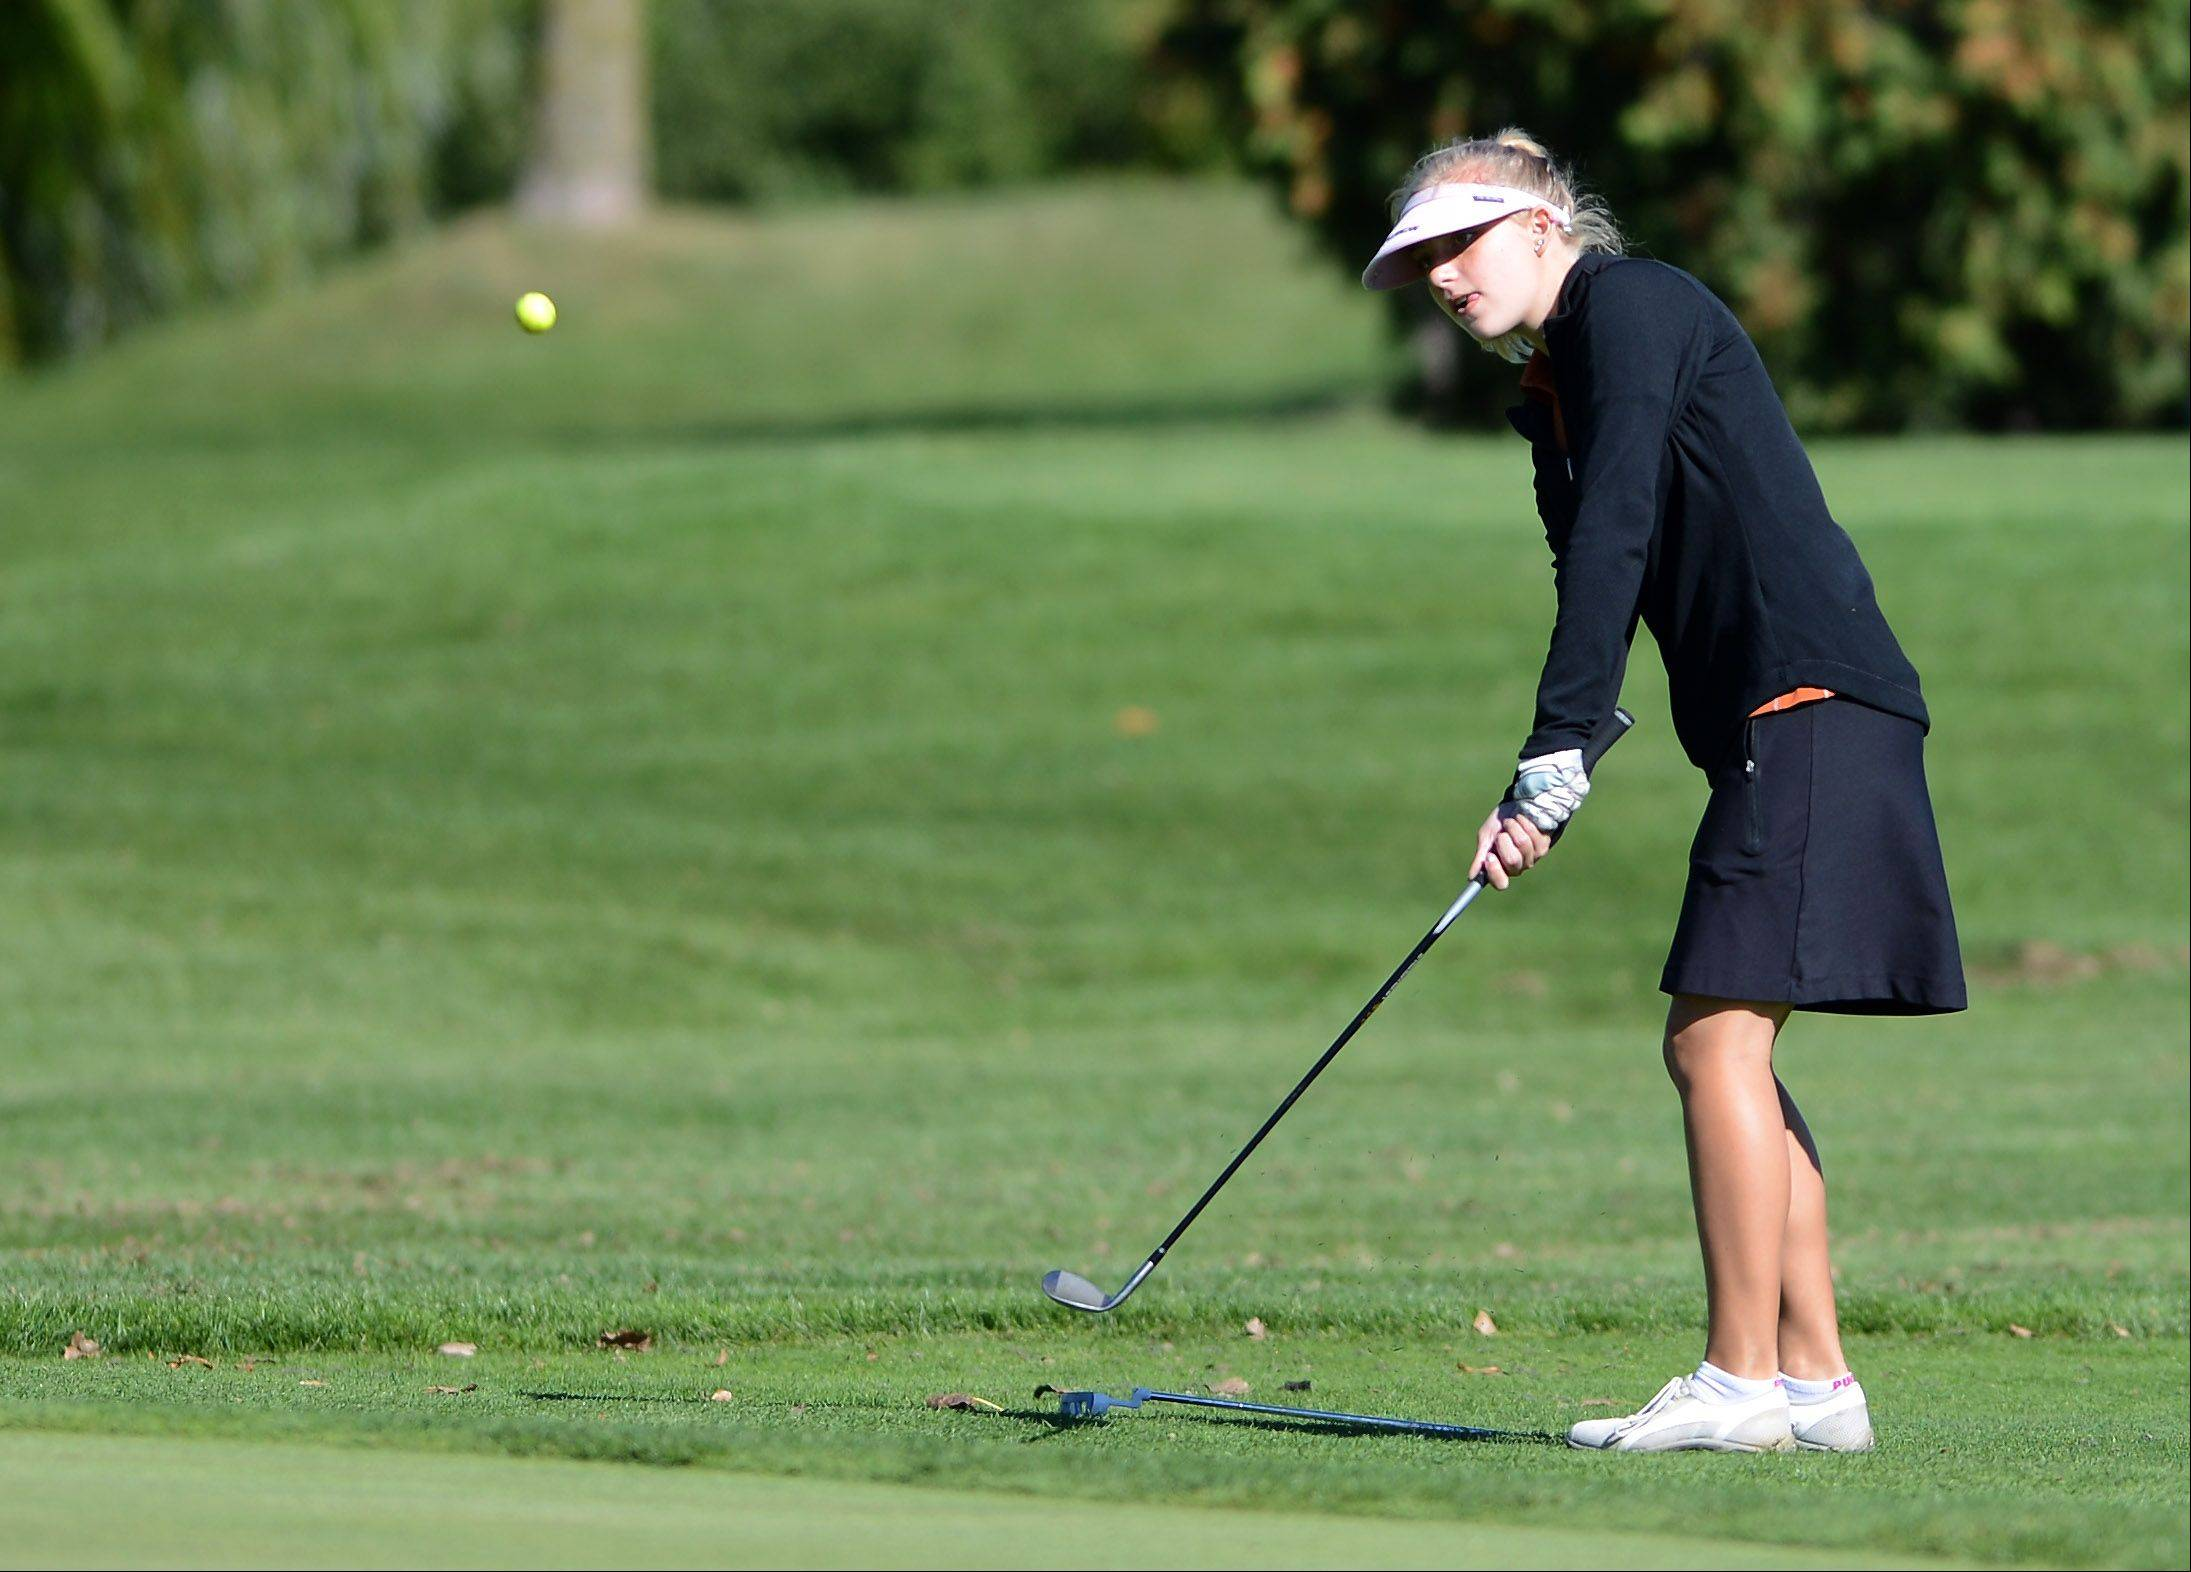 St. Charles East's Reagan Stanton chips on to the green during Wednesday's Prairie Ridge regional golf action at Prairie Isle golf course in Crystal Lake